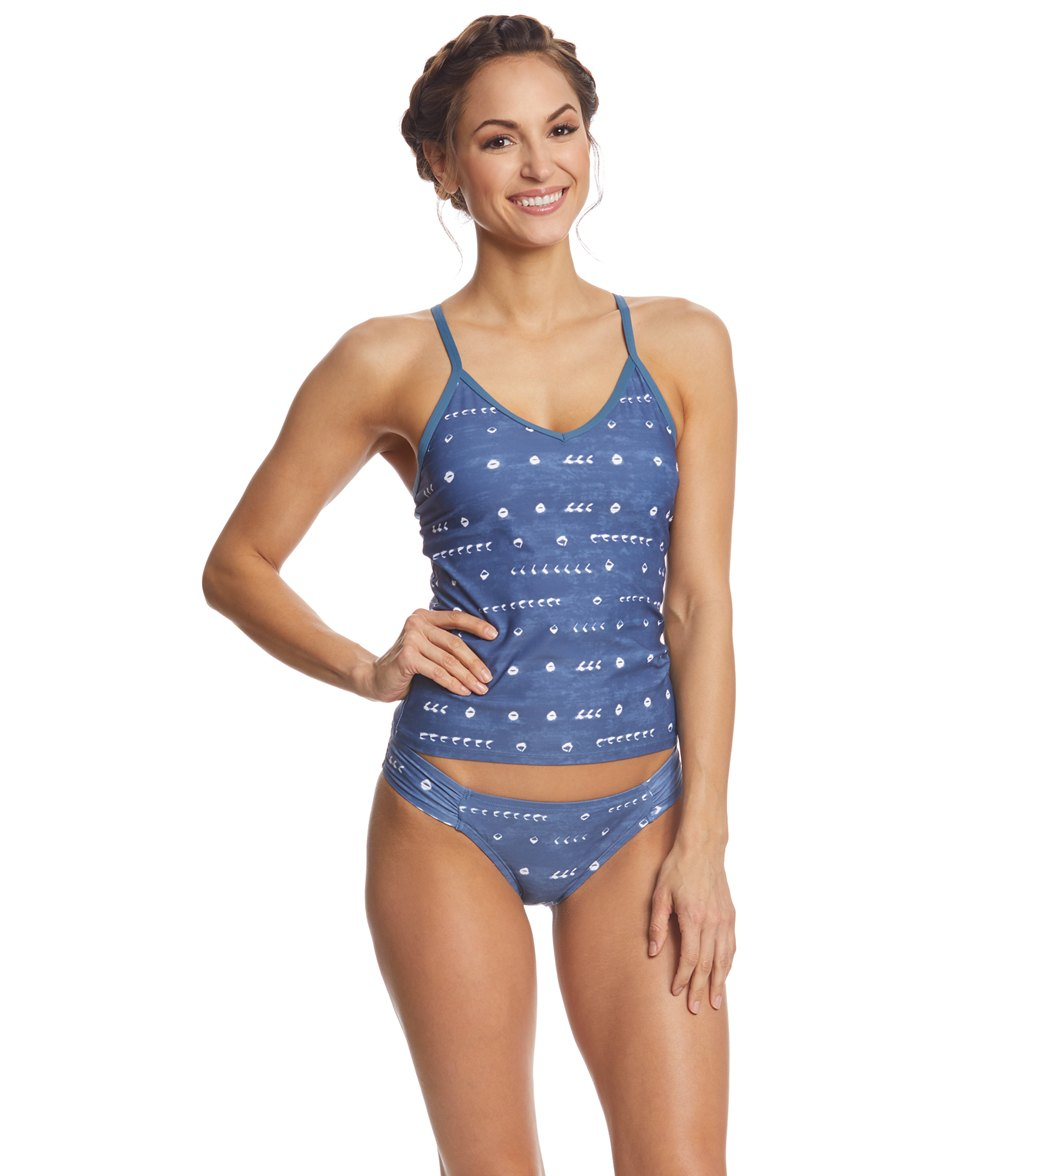 57a998748caa8 Carve Designs Catalina Tankini Top at SwimOutlet.com - Free Shipping